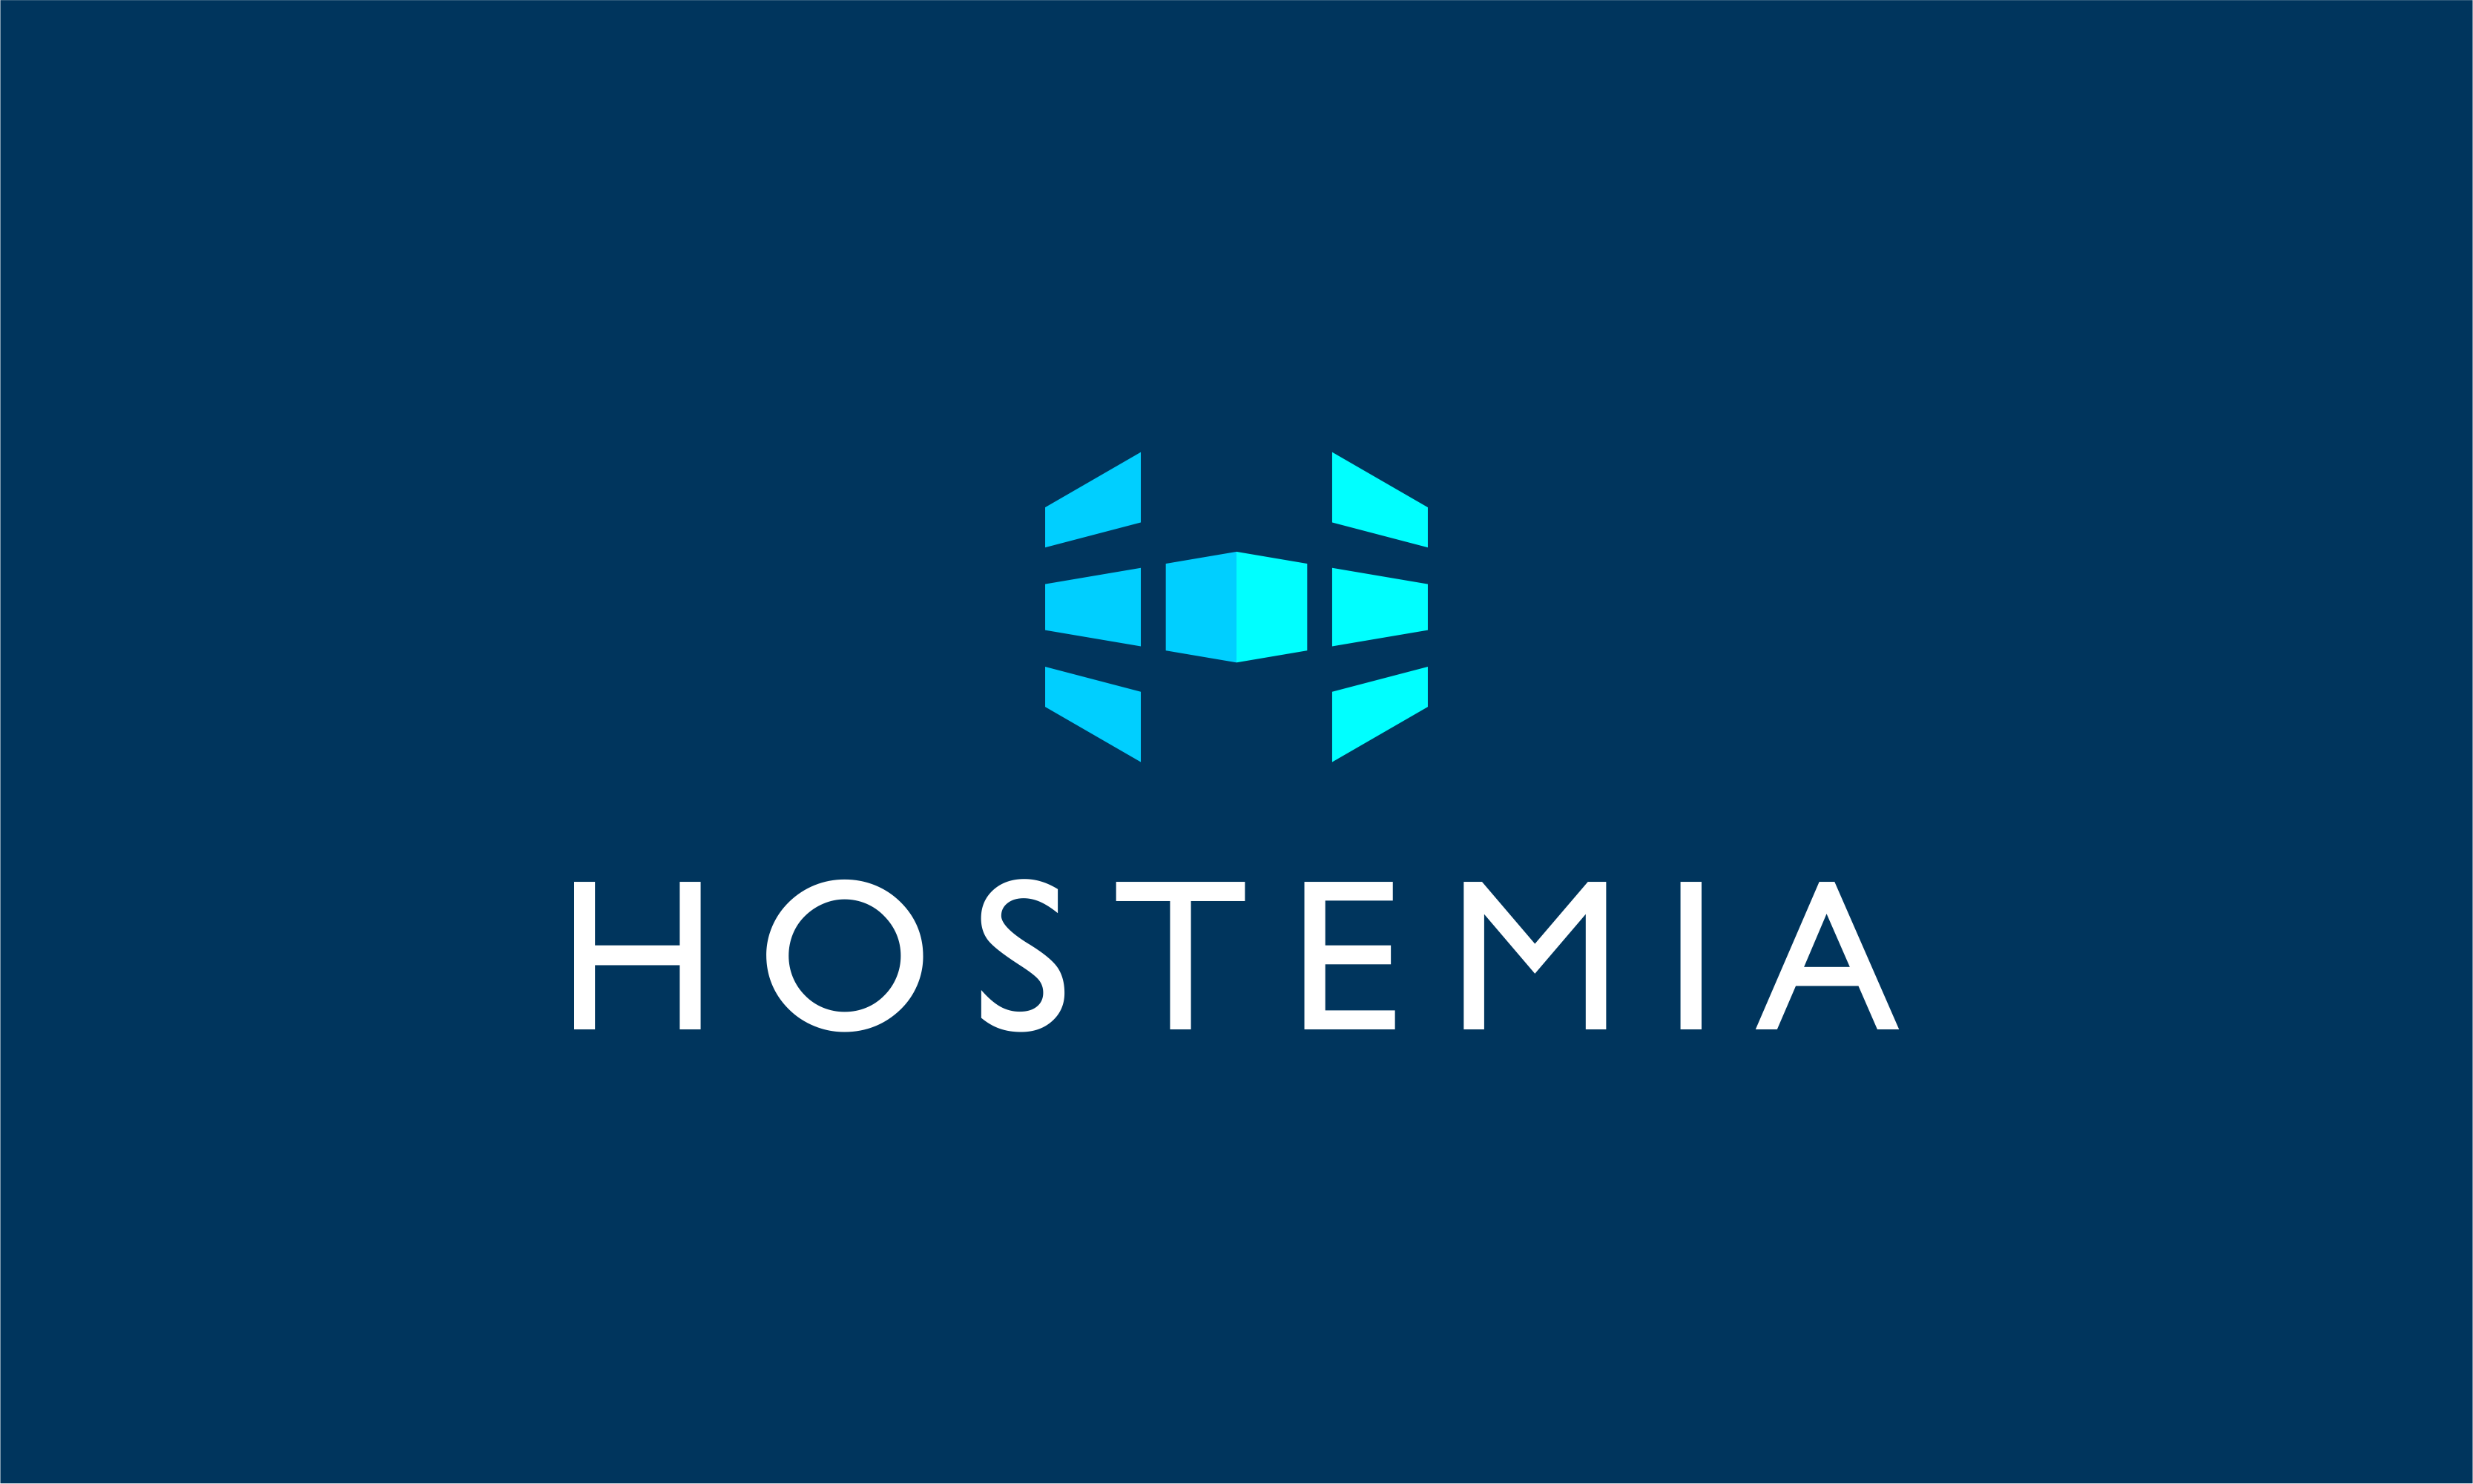 Hostemia - Business business name for sale